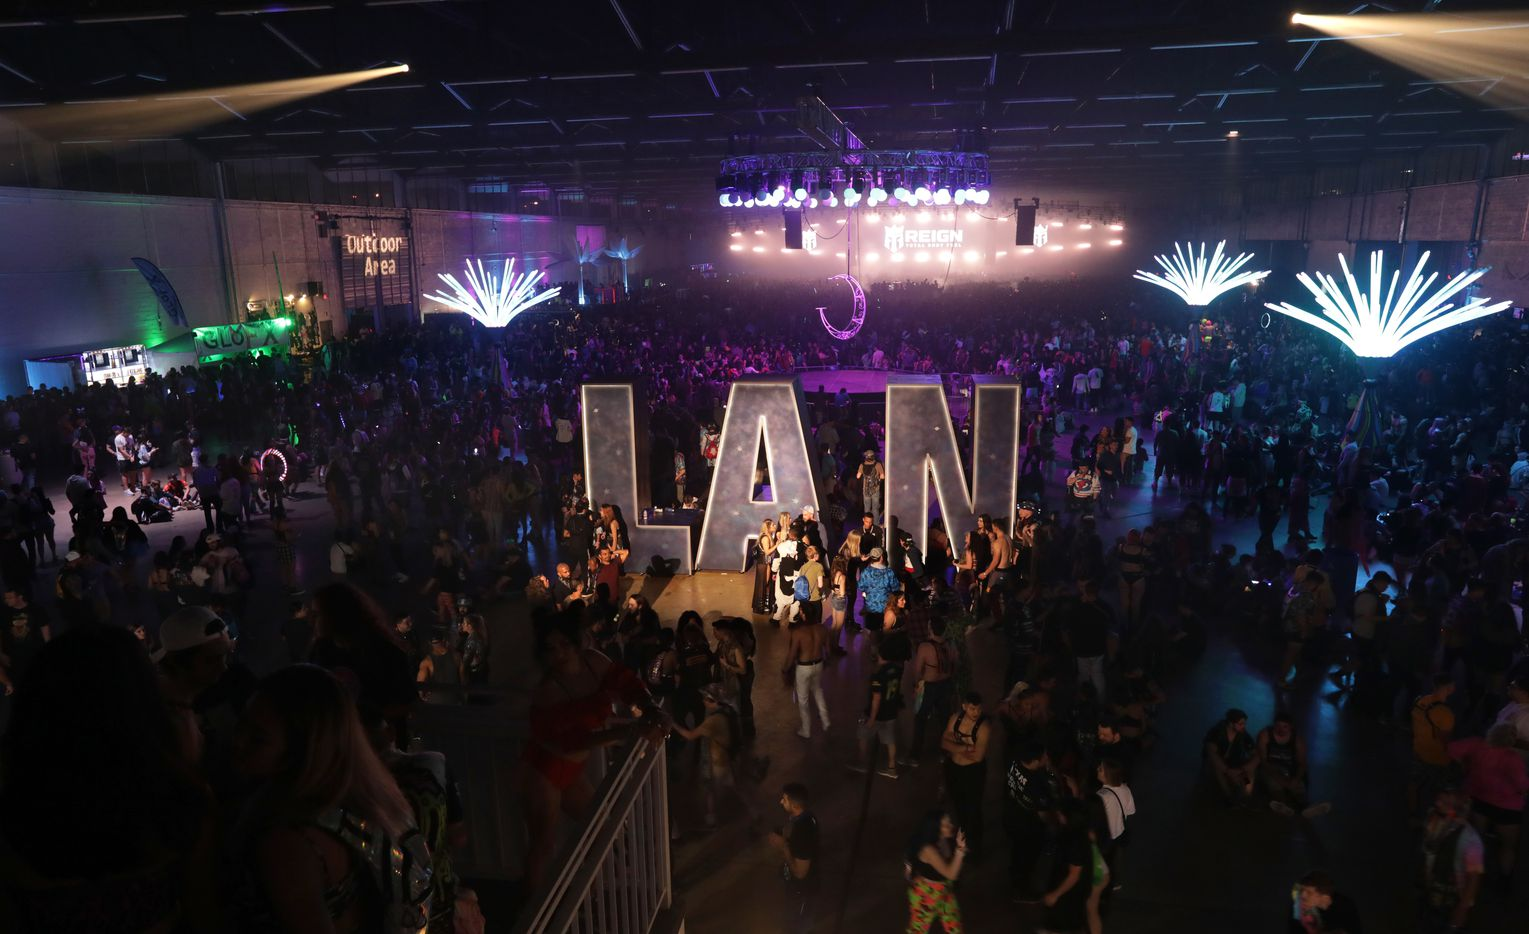 Guests attend Lights All Night at Dallas Market Hall in Dallas, Texas, on Dec. 27, 2019.